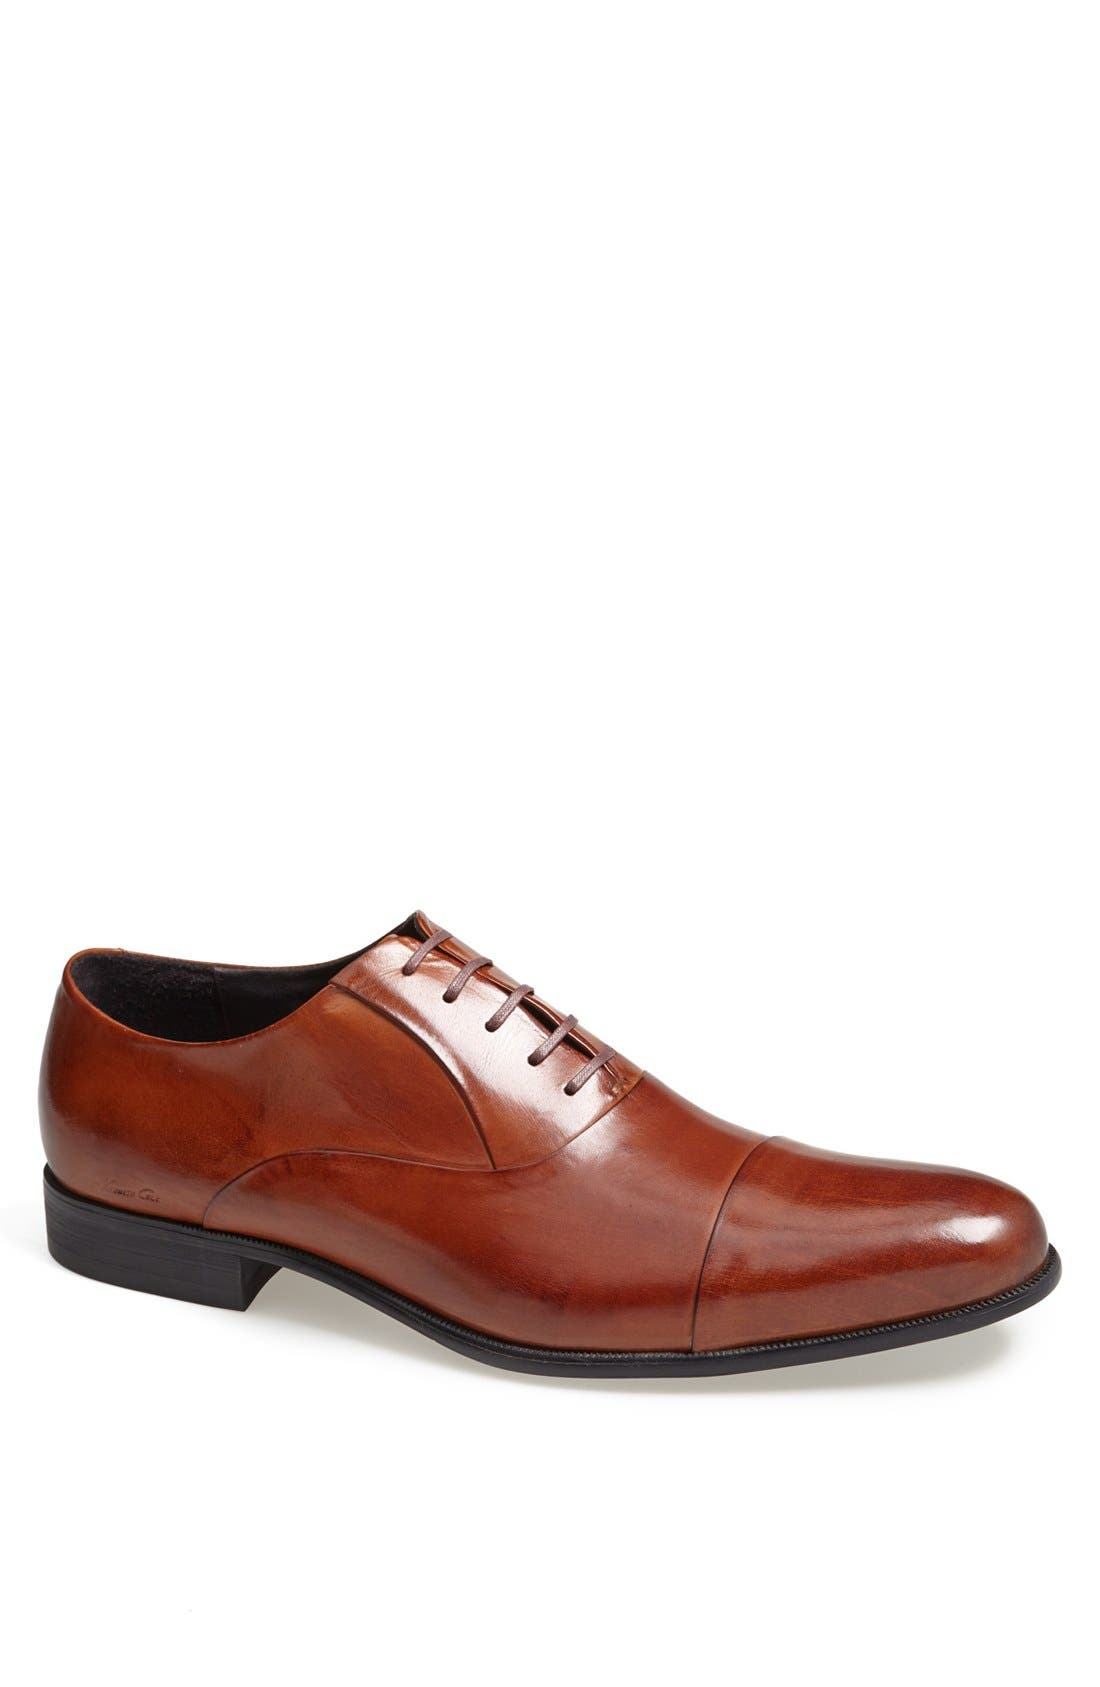 KENNETH COLE NEW YORK 'Chief Council' Cap Toe